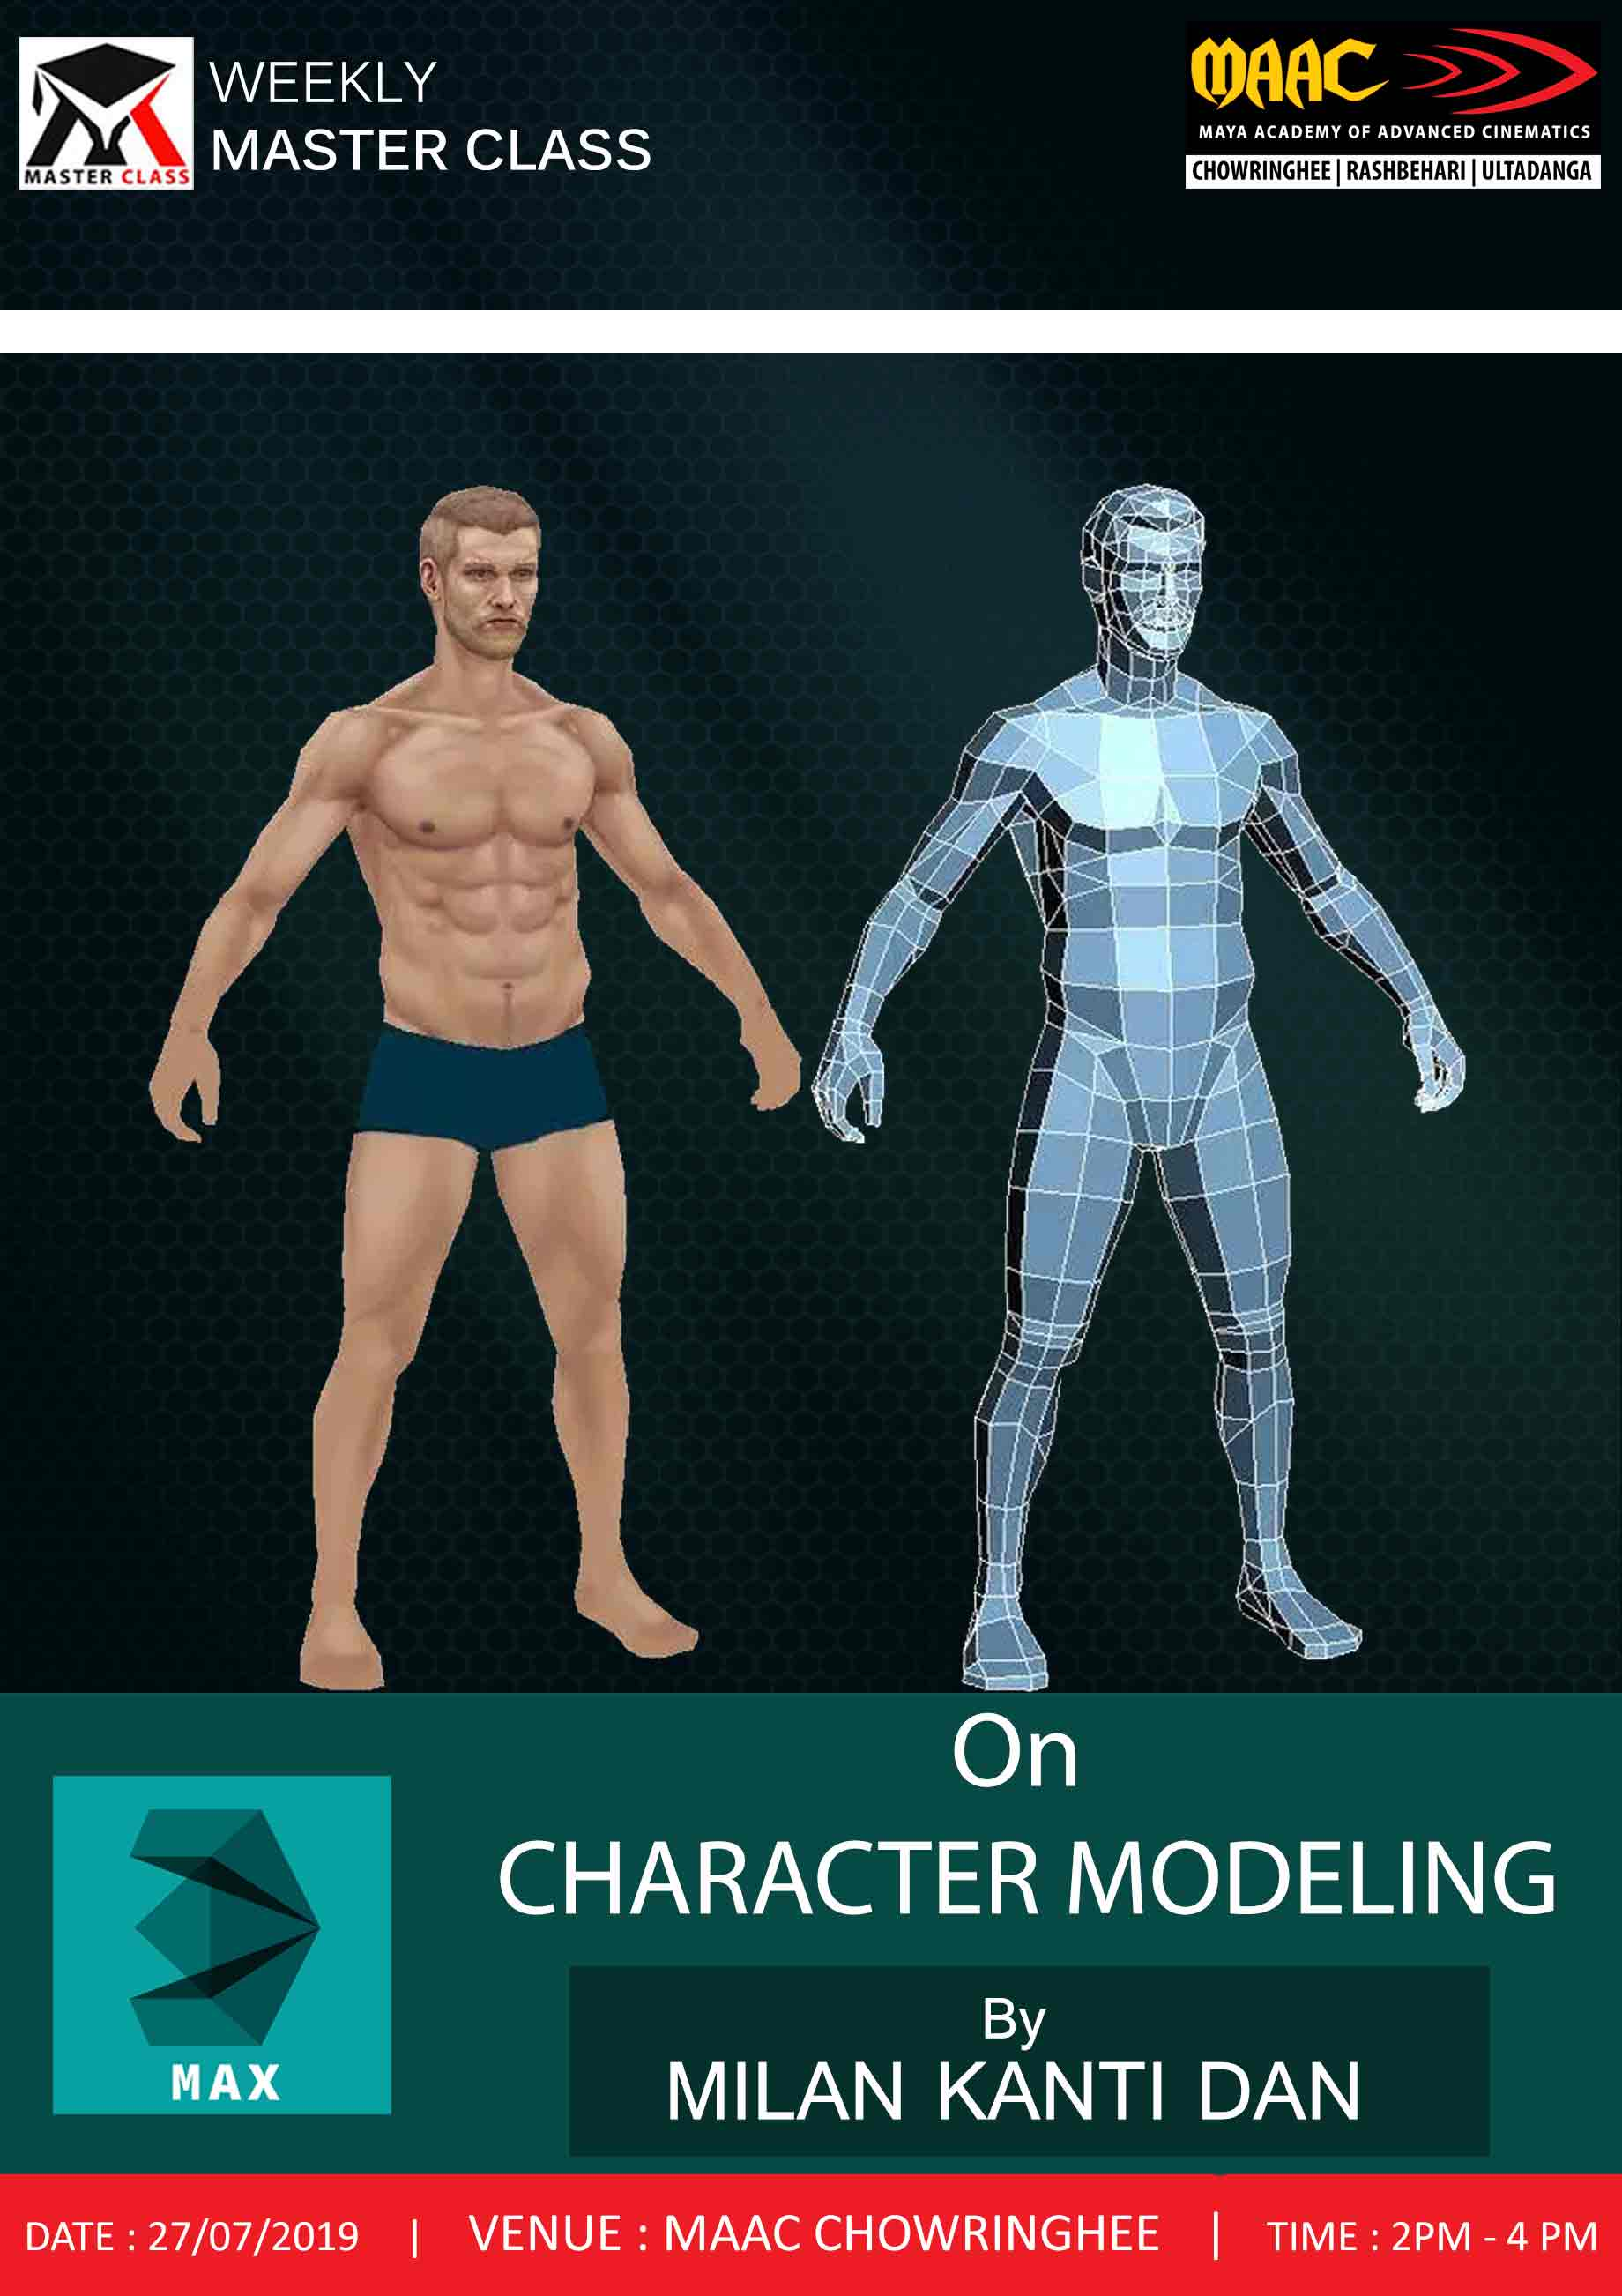 Weekly Master Class on Character Modeling